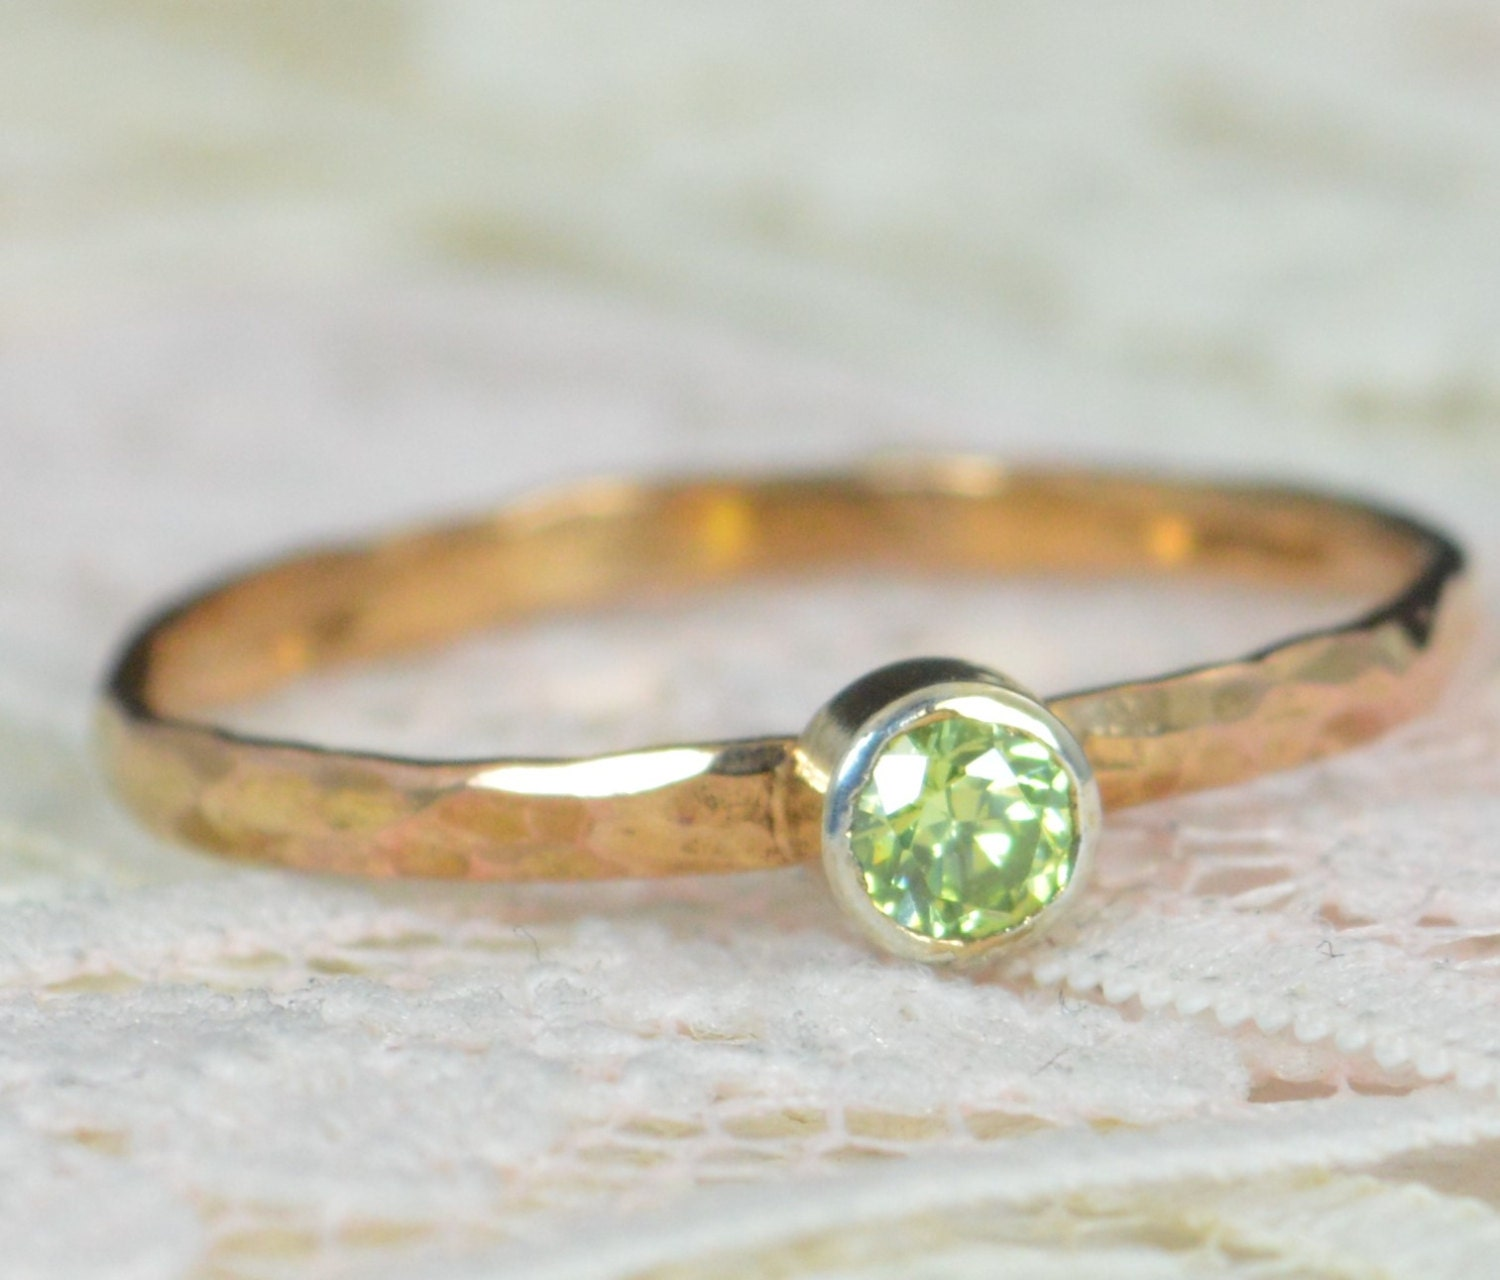 solitaire platinum engagement halo wedding rings yellow double diamond cocktail ring portfolio gold peridot items